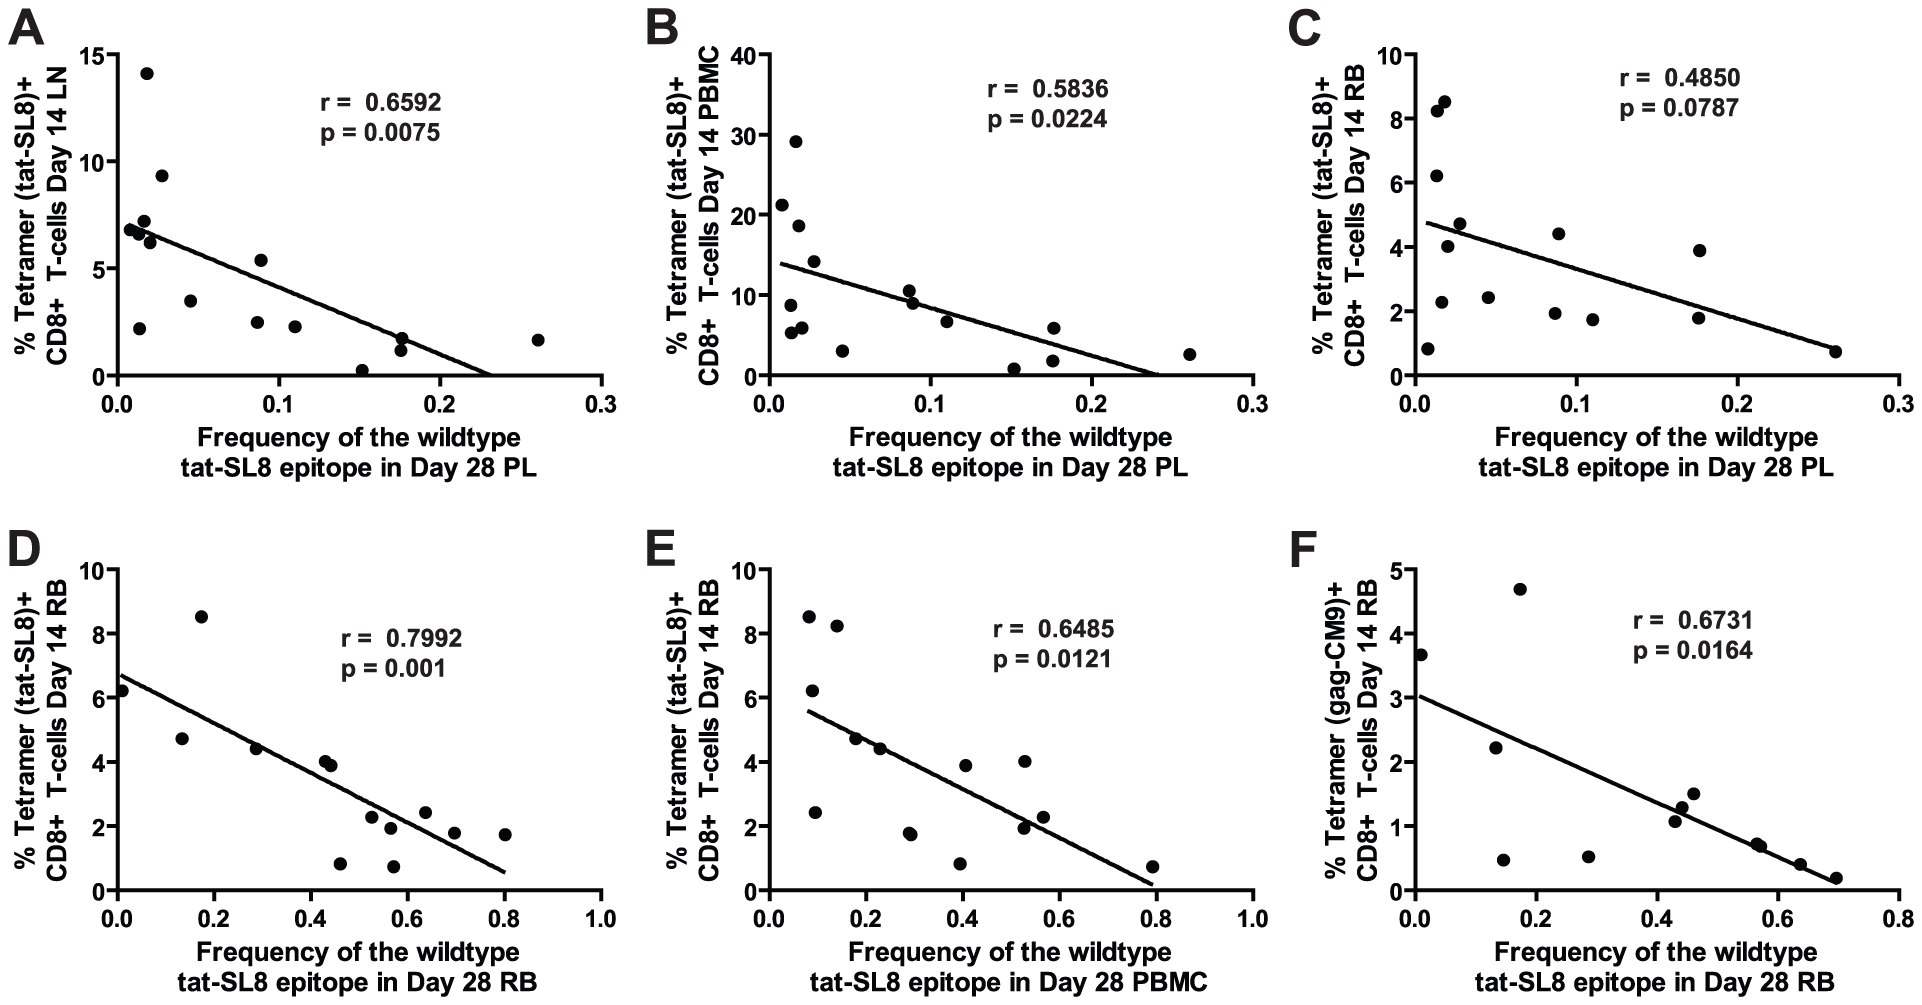 Anti-SIV immune responses in lymphoid tissues and rectal mucosa at day 14 post infection were significantly correlated with the level of tat-SL8 escape at day 28 post infection in the plasma virus and rectal mucosa, respectively.